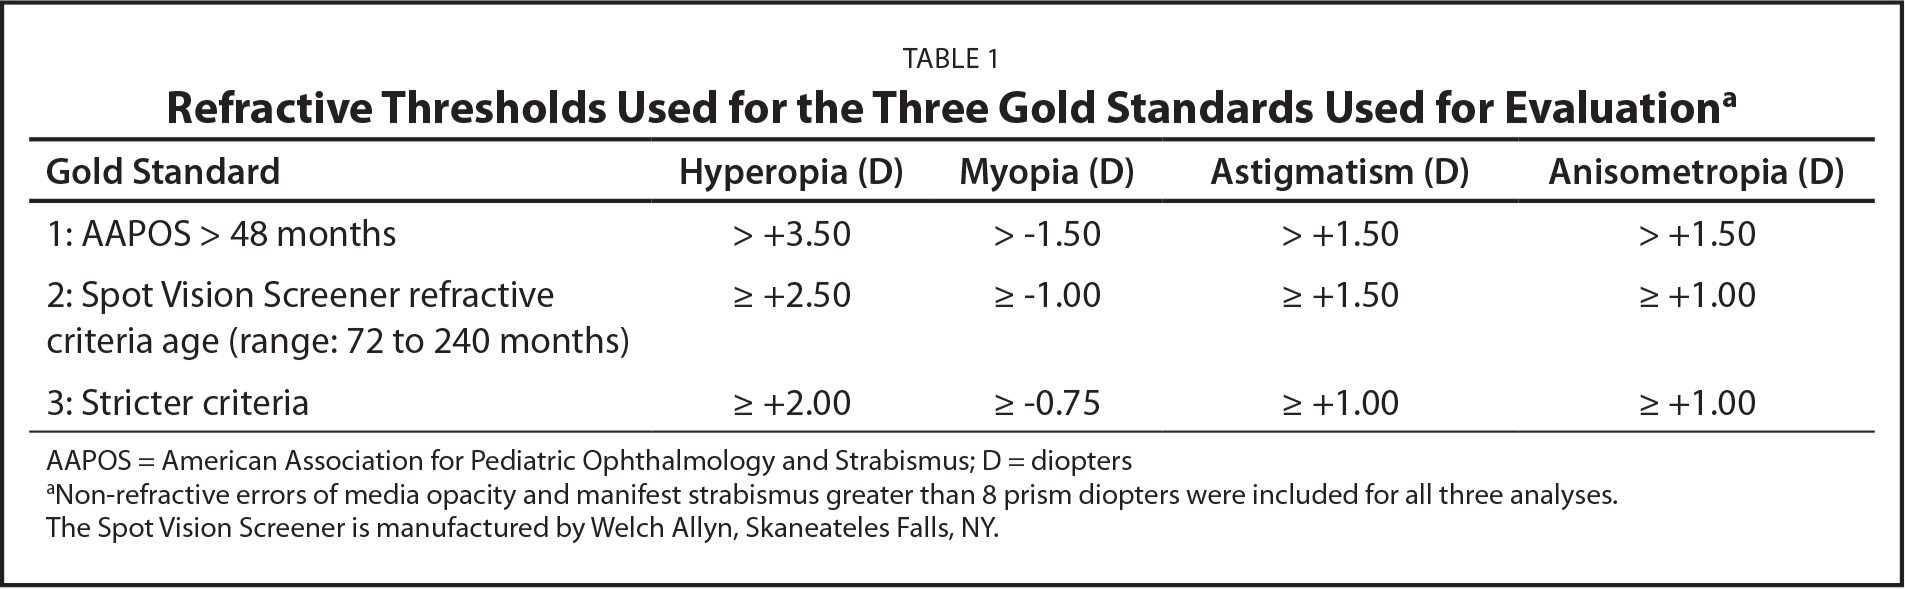 Refractive Thresholds Used for the Three Gold Standards Used for Evaluationa